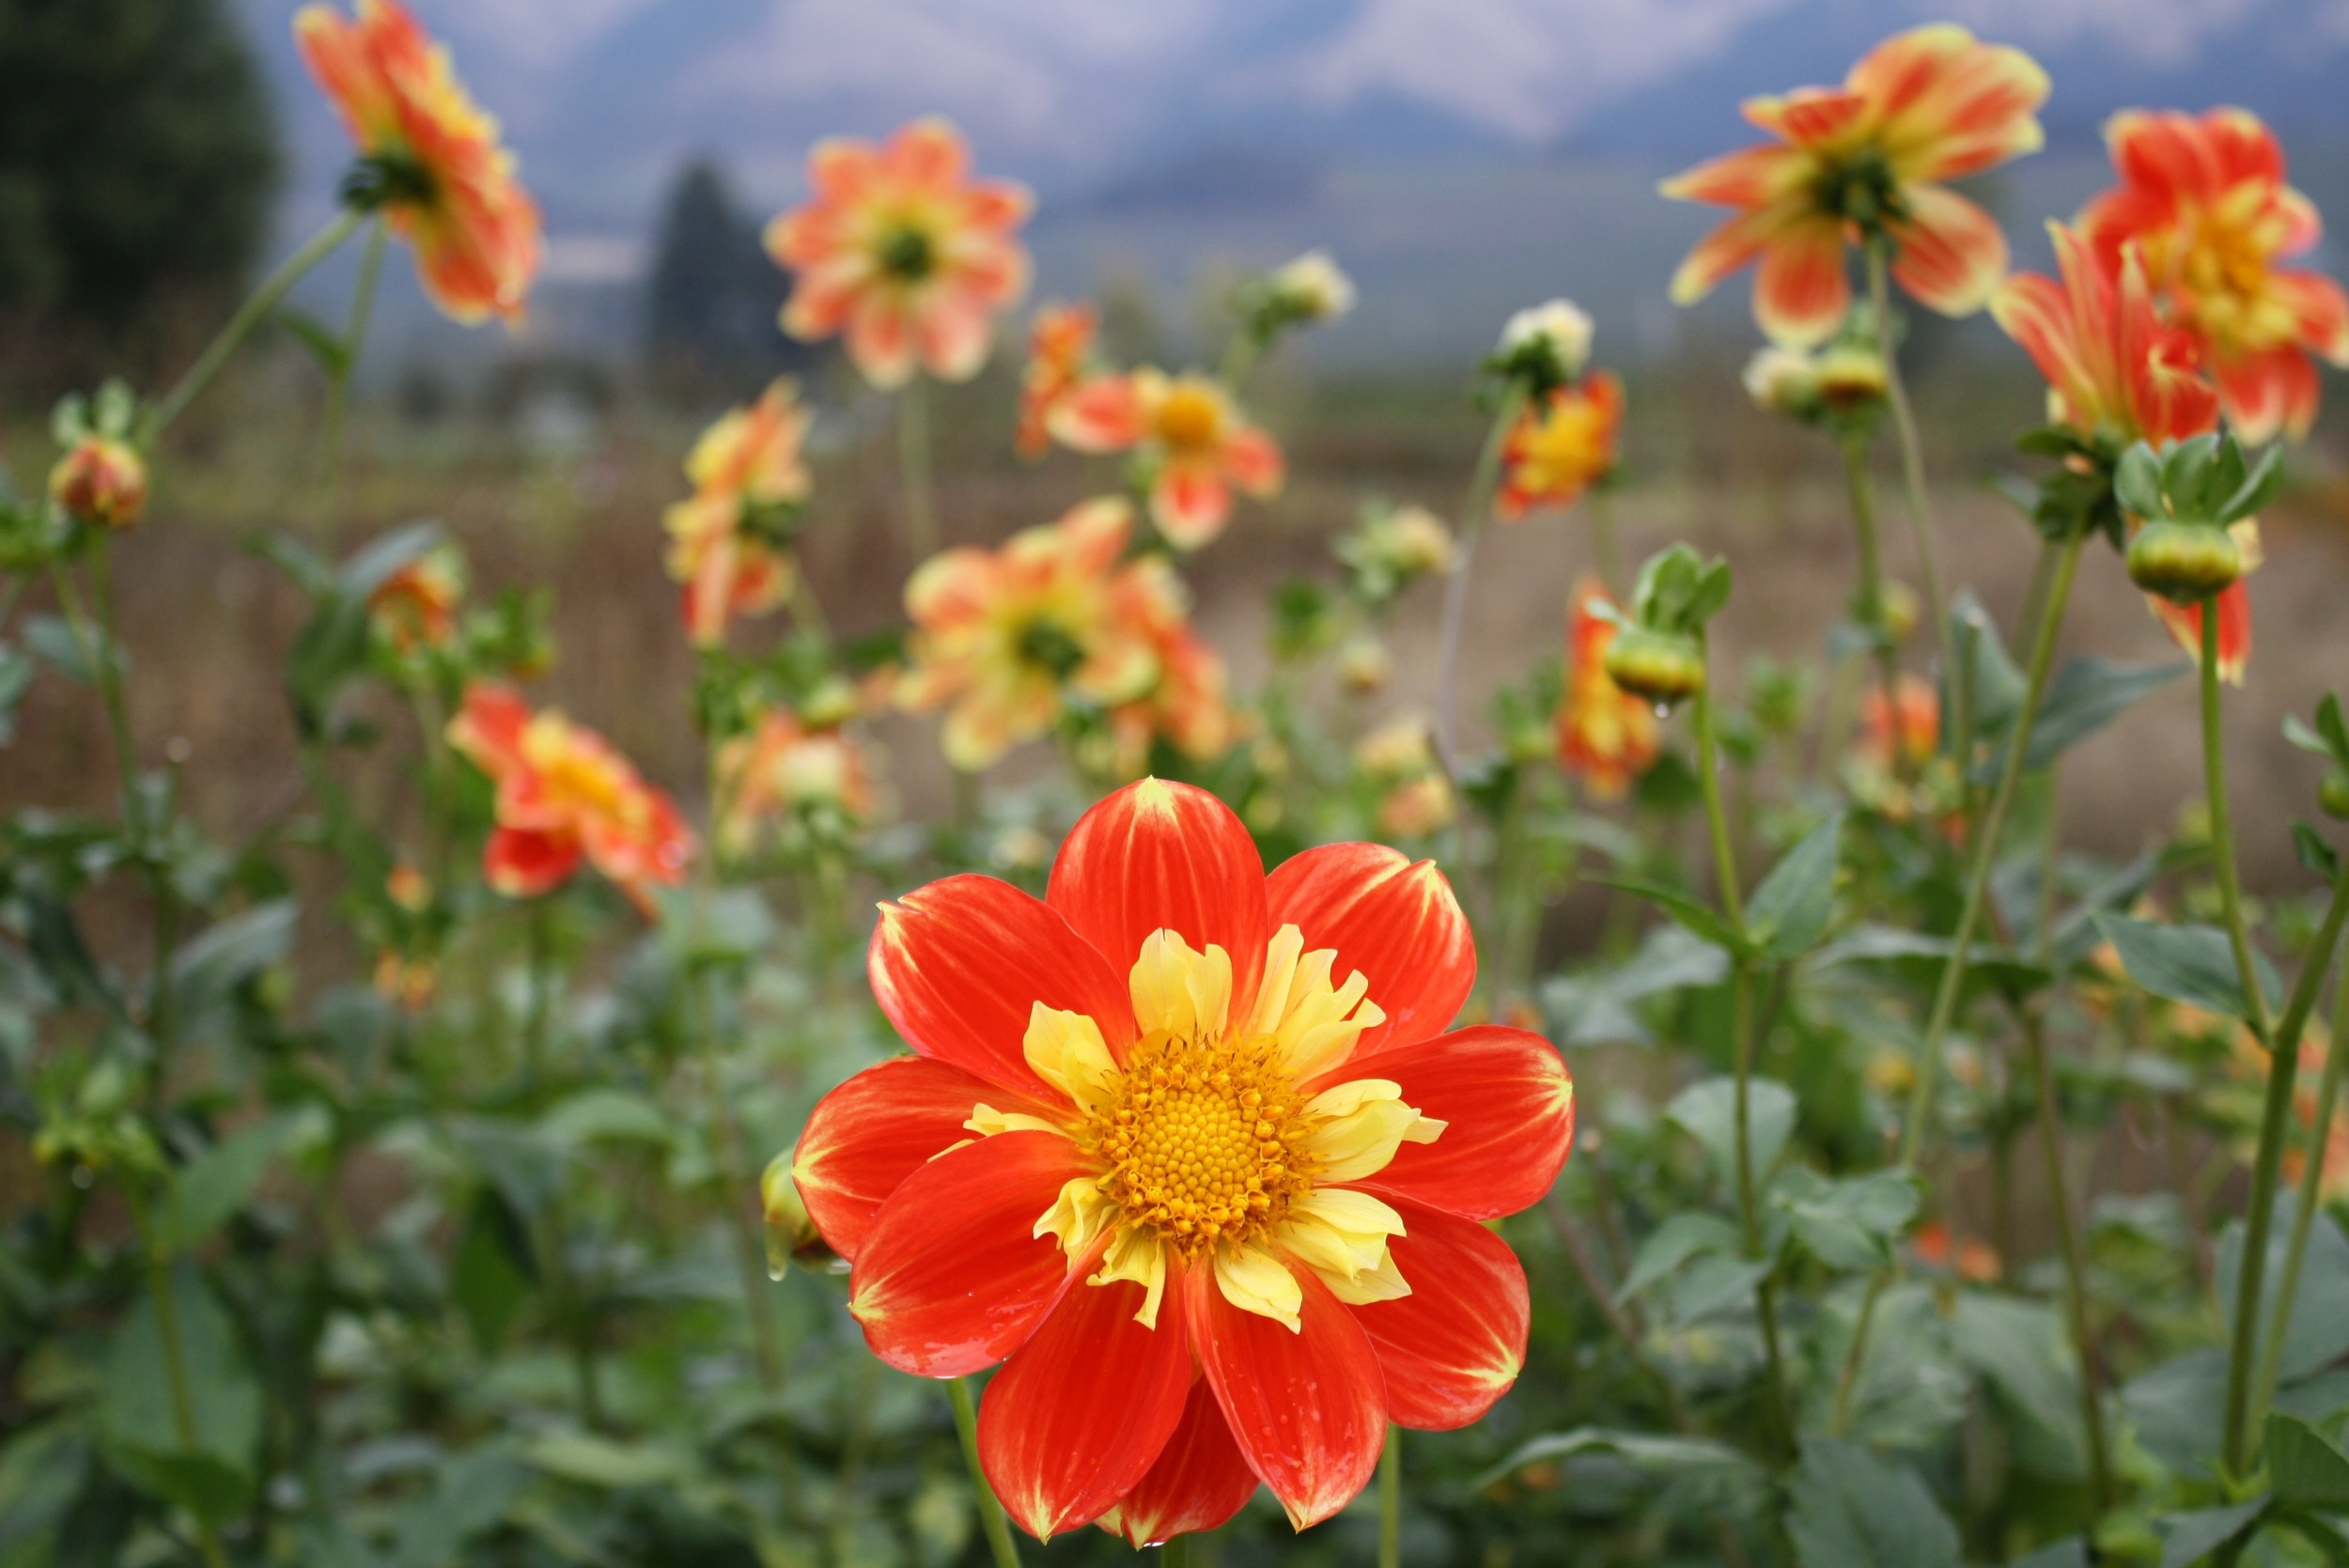 Dahlias in bloom, Hood River, OR